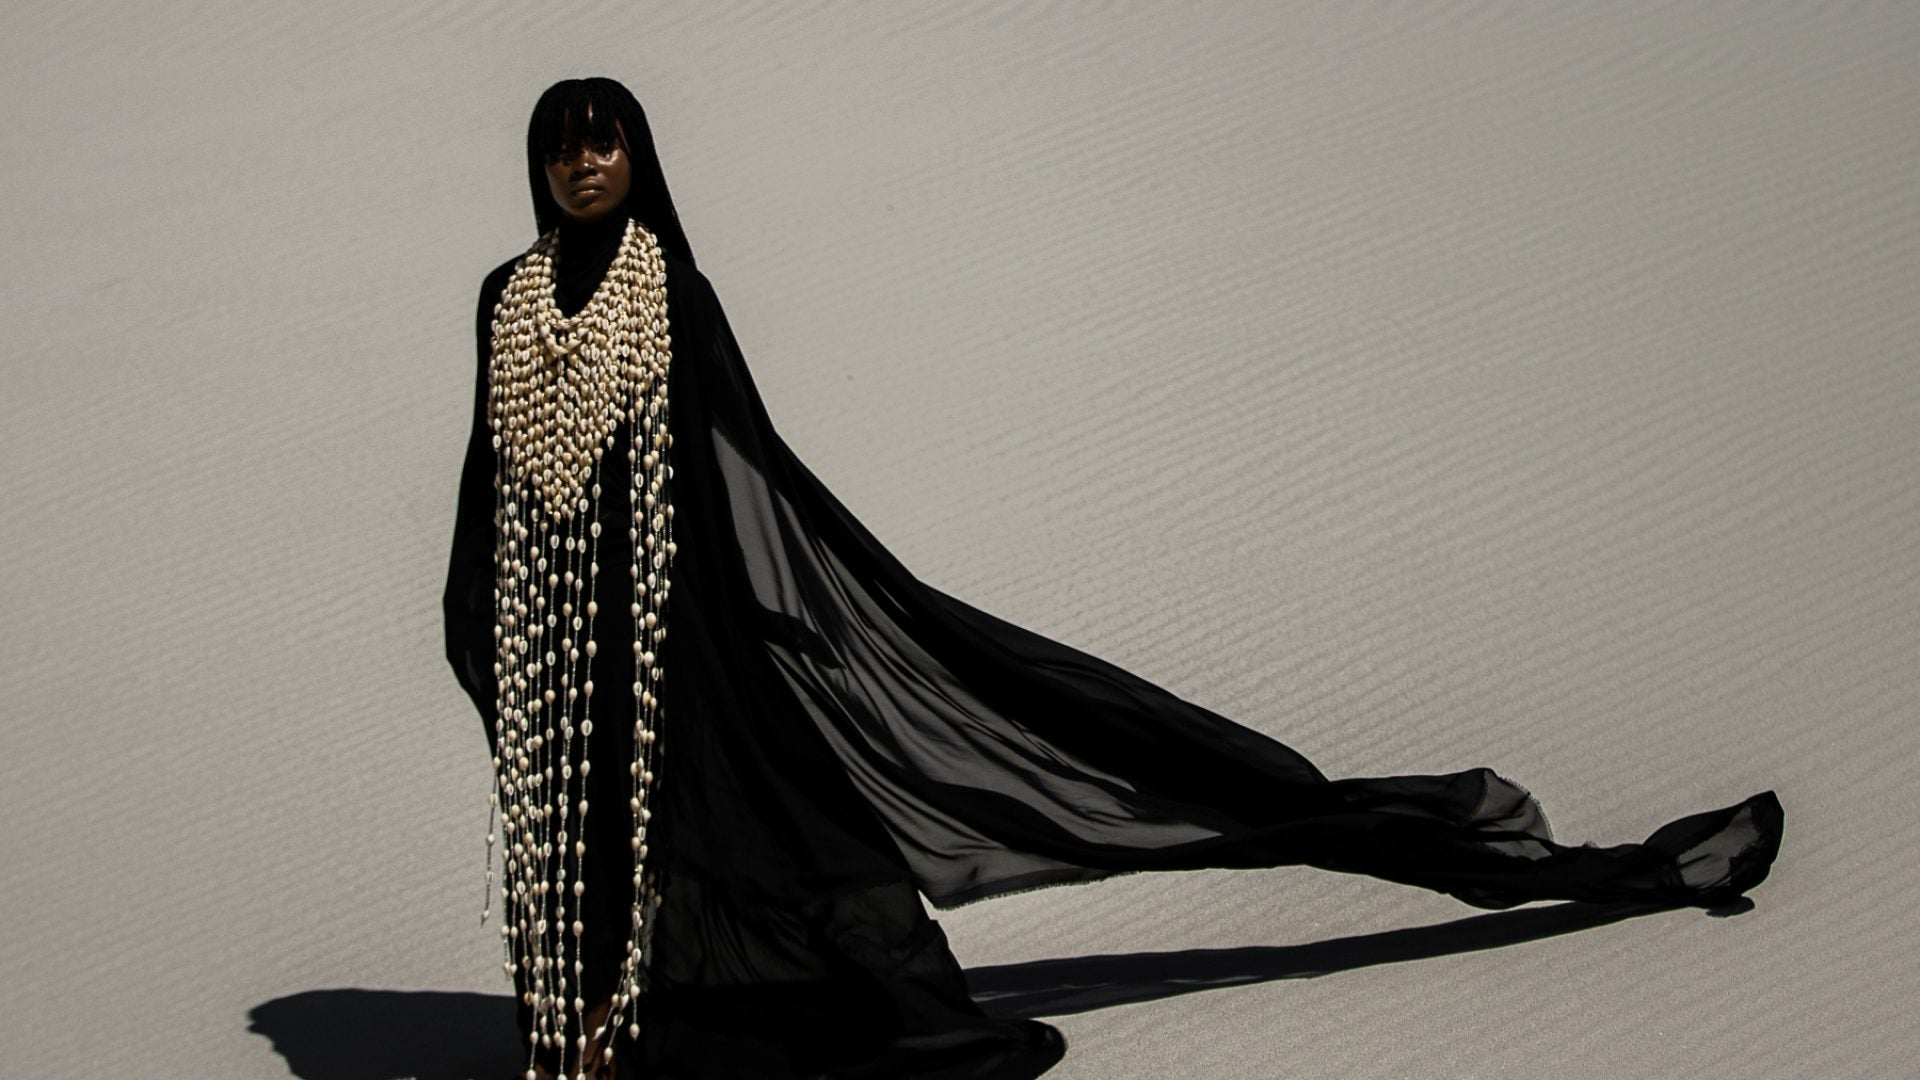 Lafalaise Dion Takes ESSENCE On A Personal Journey